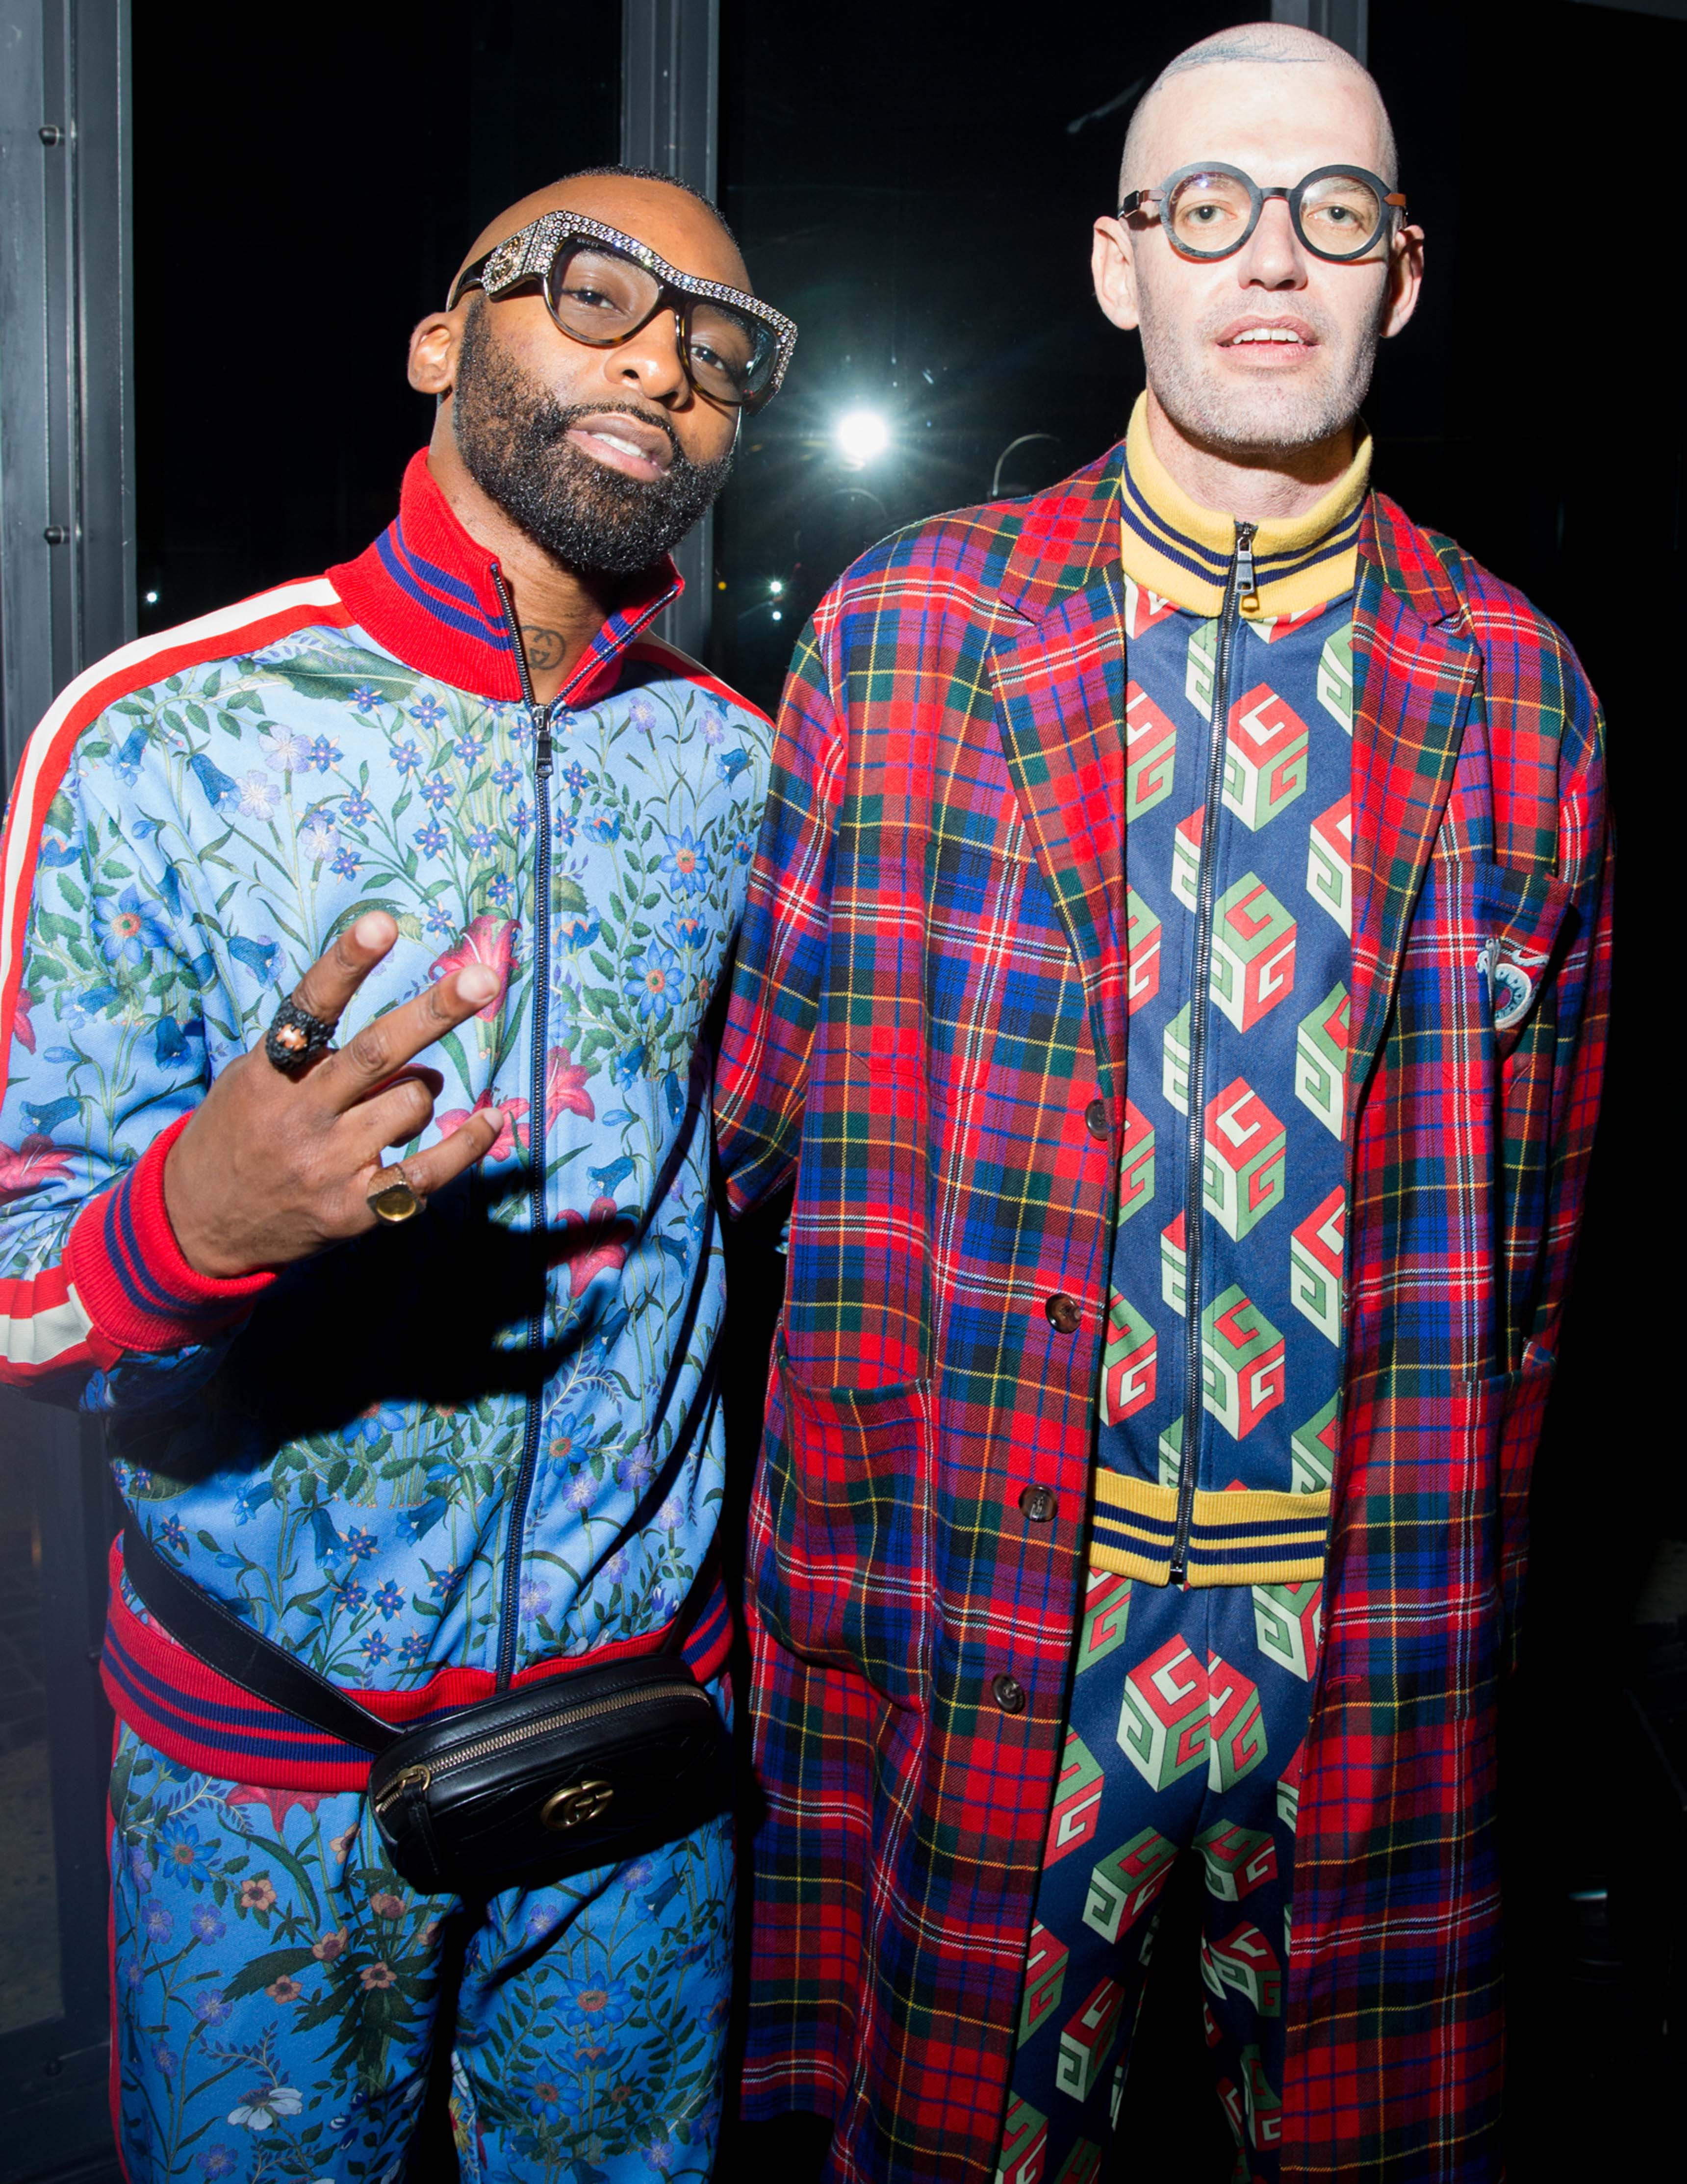 Riky Rick wore a Gucci Fall Winter 2017 azure macro new flora printed technical jersey zipped jacket and an azure macro new flora printed technical jersey jogging pants, a Pre Fall 2017 belt bag in black matelassé chevron leather with GG detail, and a Cruise 2017 leather sole moccasin in black leather with horsebit and Union Jack detail. Louw Kotzewore a Pre Fall 2017 royal bluette technical jersey zipped jacket with GG Wallpaper print and a royal bluette technical jersey jogging pants with GG Wallpaper print, a Pre Fall 2017 flare madras coat with embroidery detail, and Brixton mini GG wallpaper shoes.